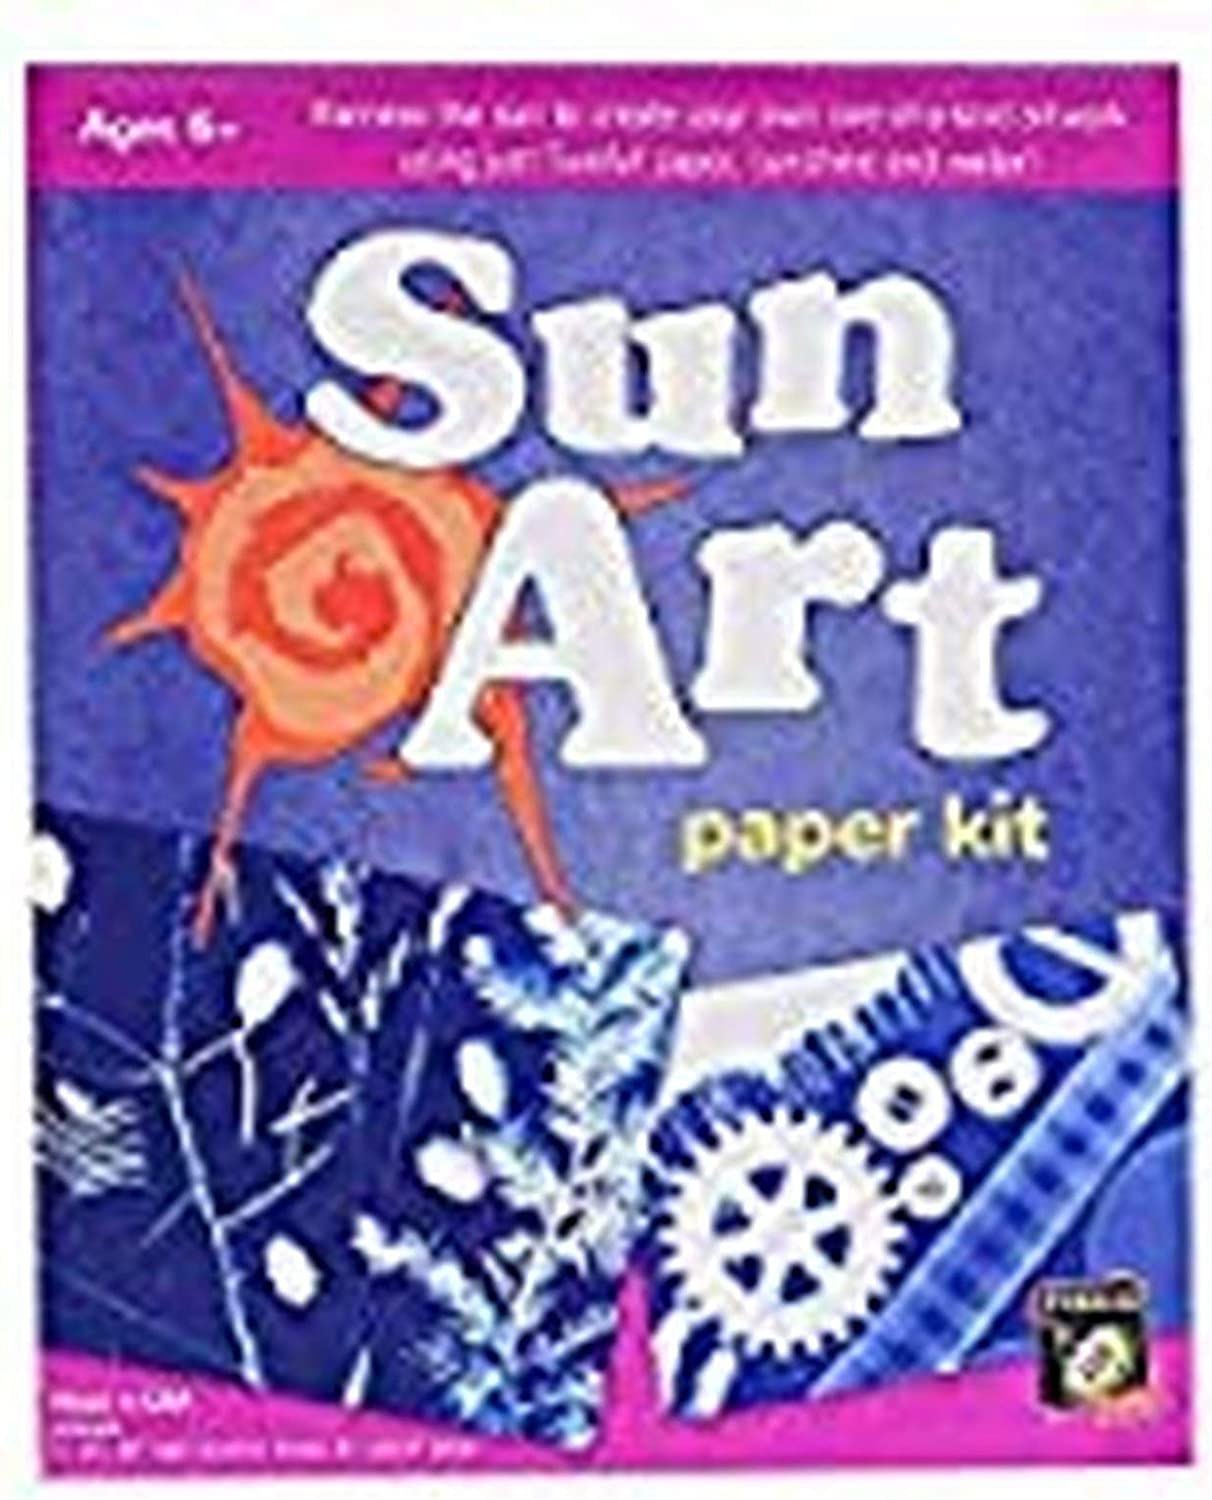 Tedco Solar Drawing Paper Art Kit, 8 X 10 Paper, 12 Sheets